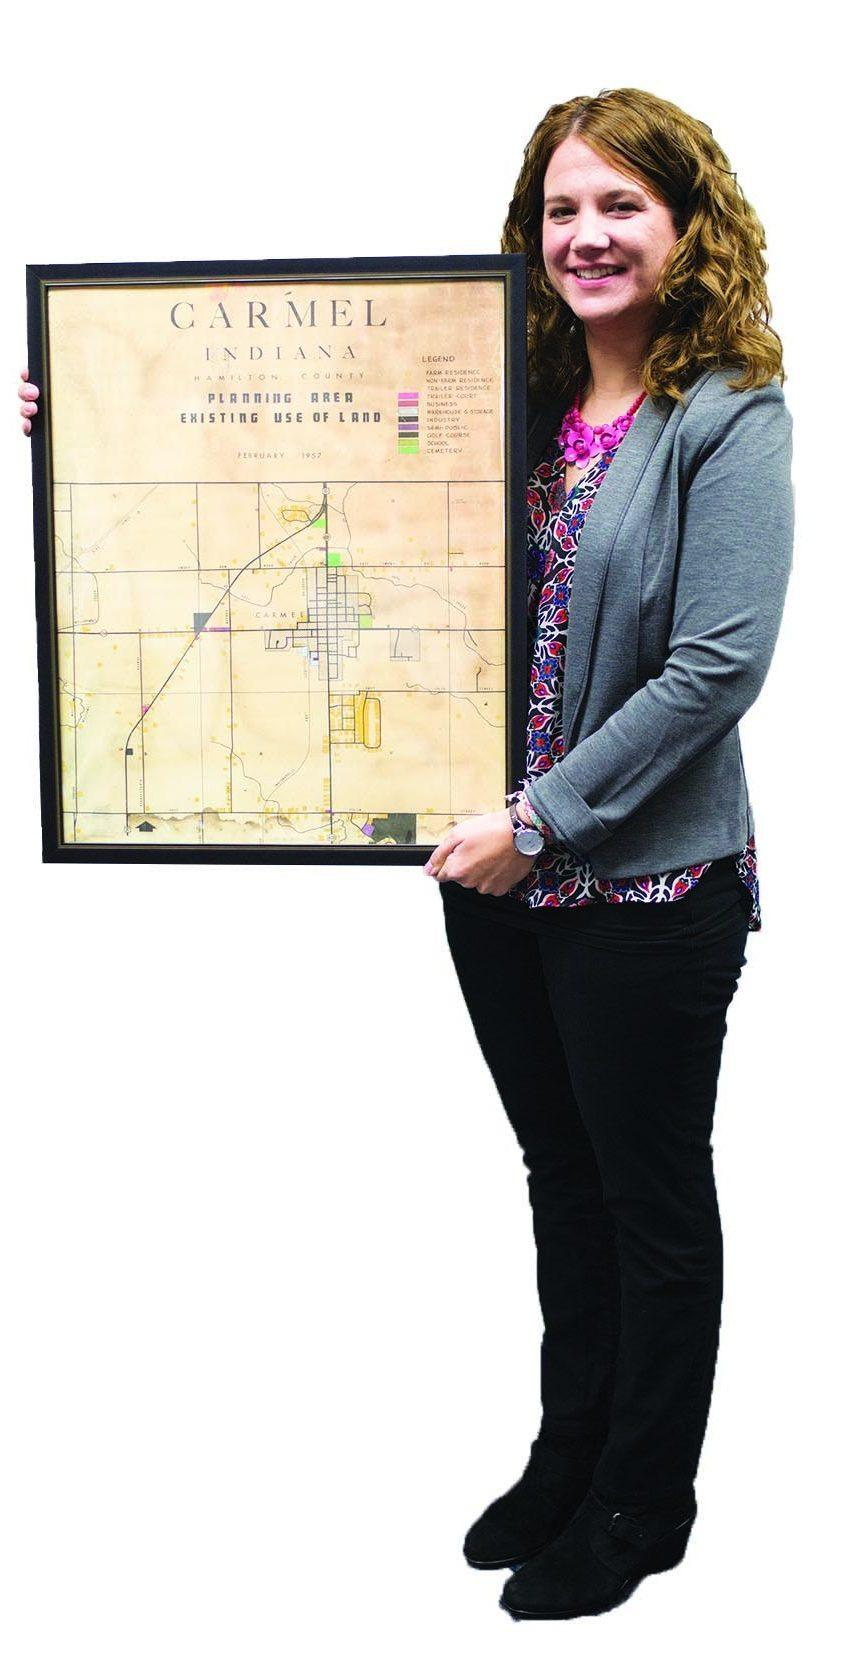 SPECIAL STATE: U.S. History teacher Allison Hargrove stands with her classroom Carmel map. She said she stayed in Indiana as an adult because it felt like home.